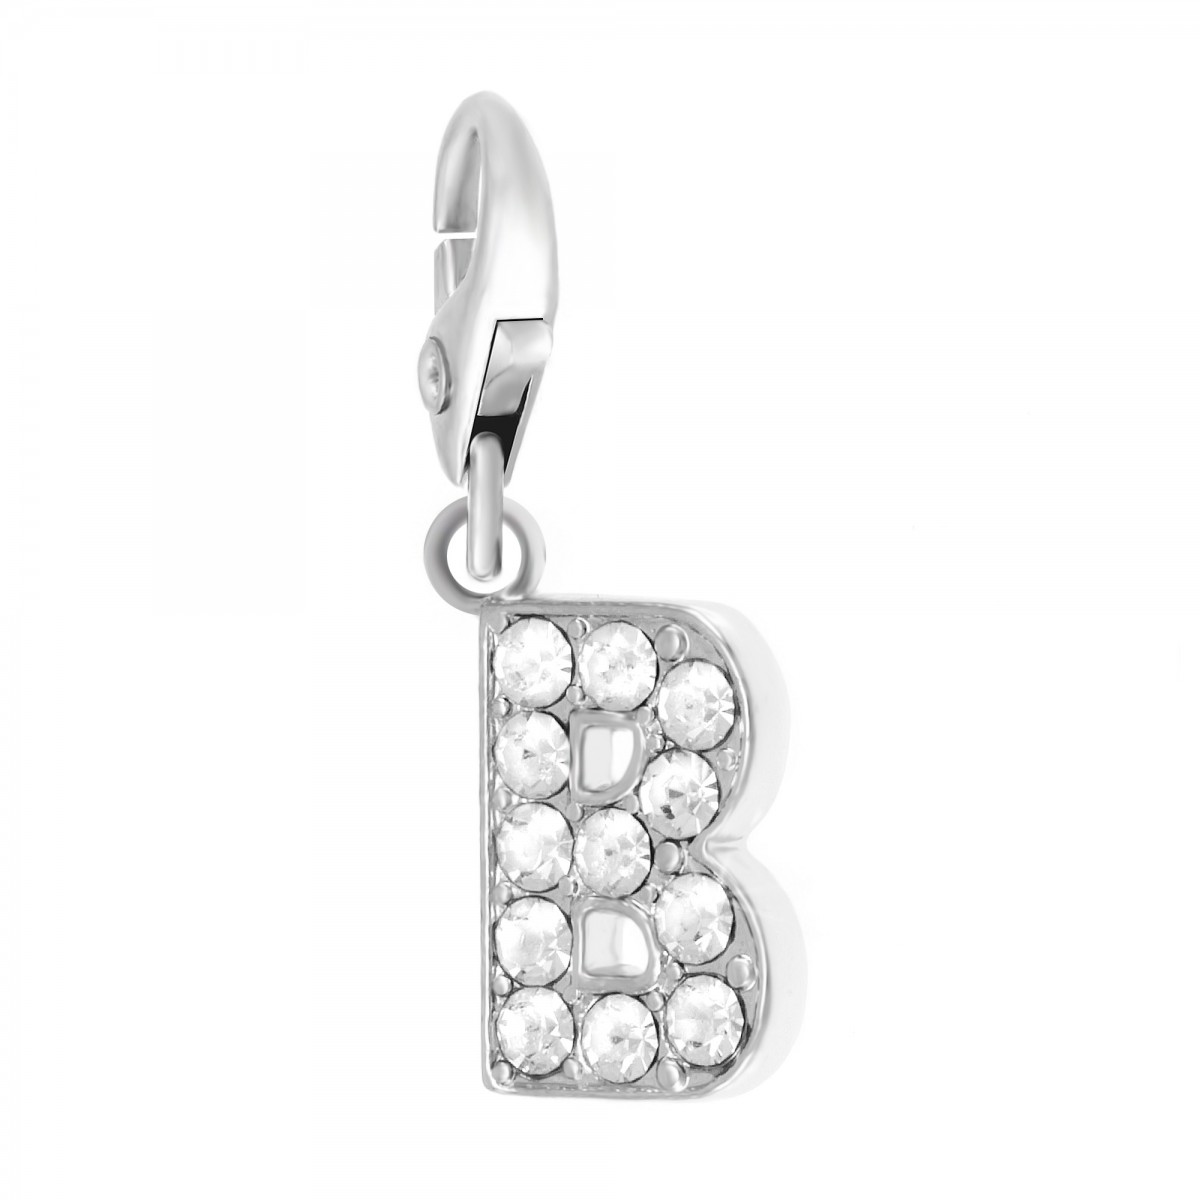 Charm Lettre B So Charm made with Crystal from Swarovski